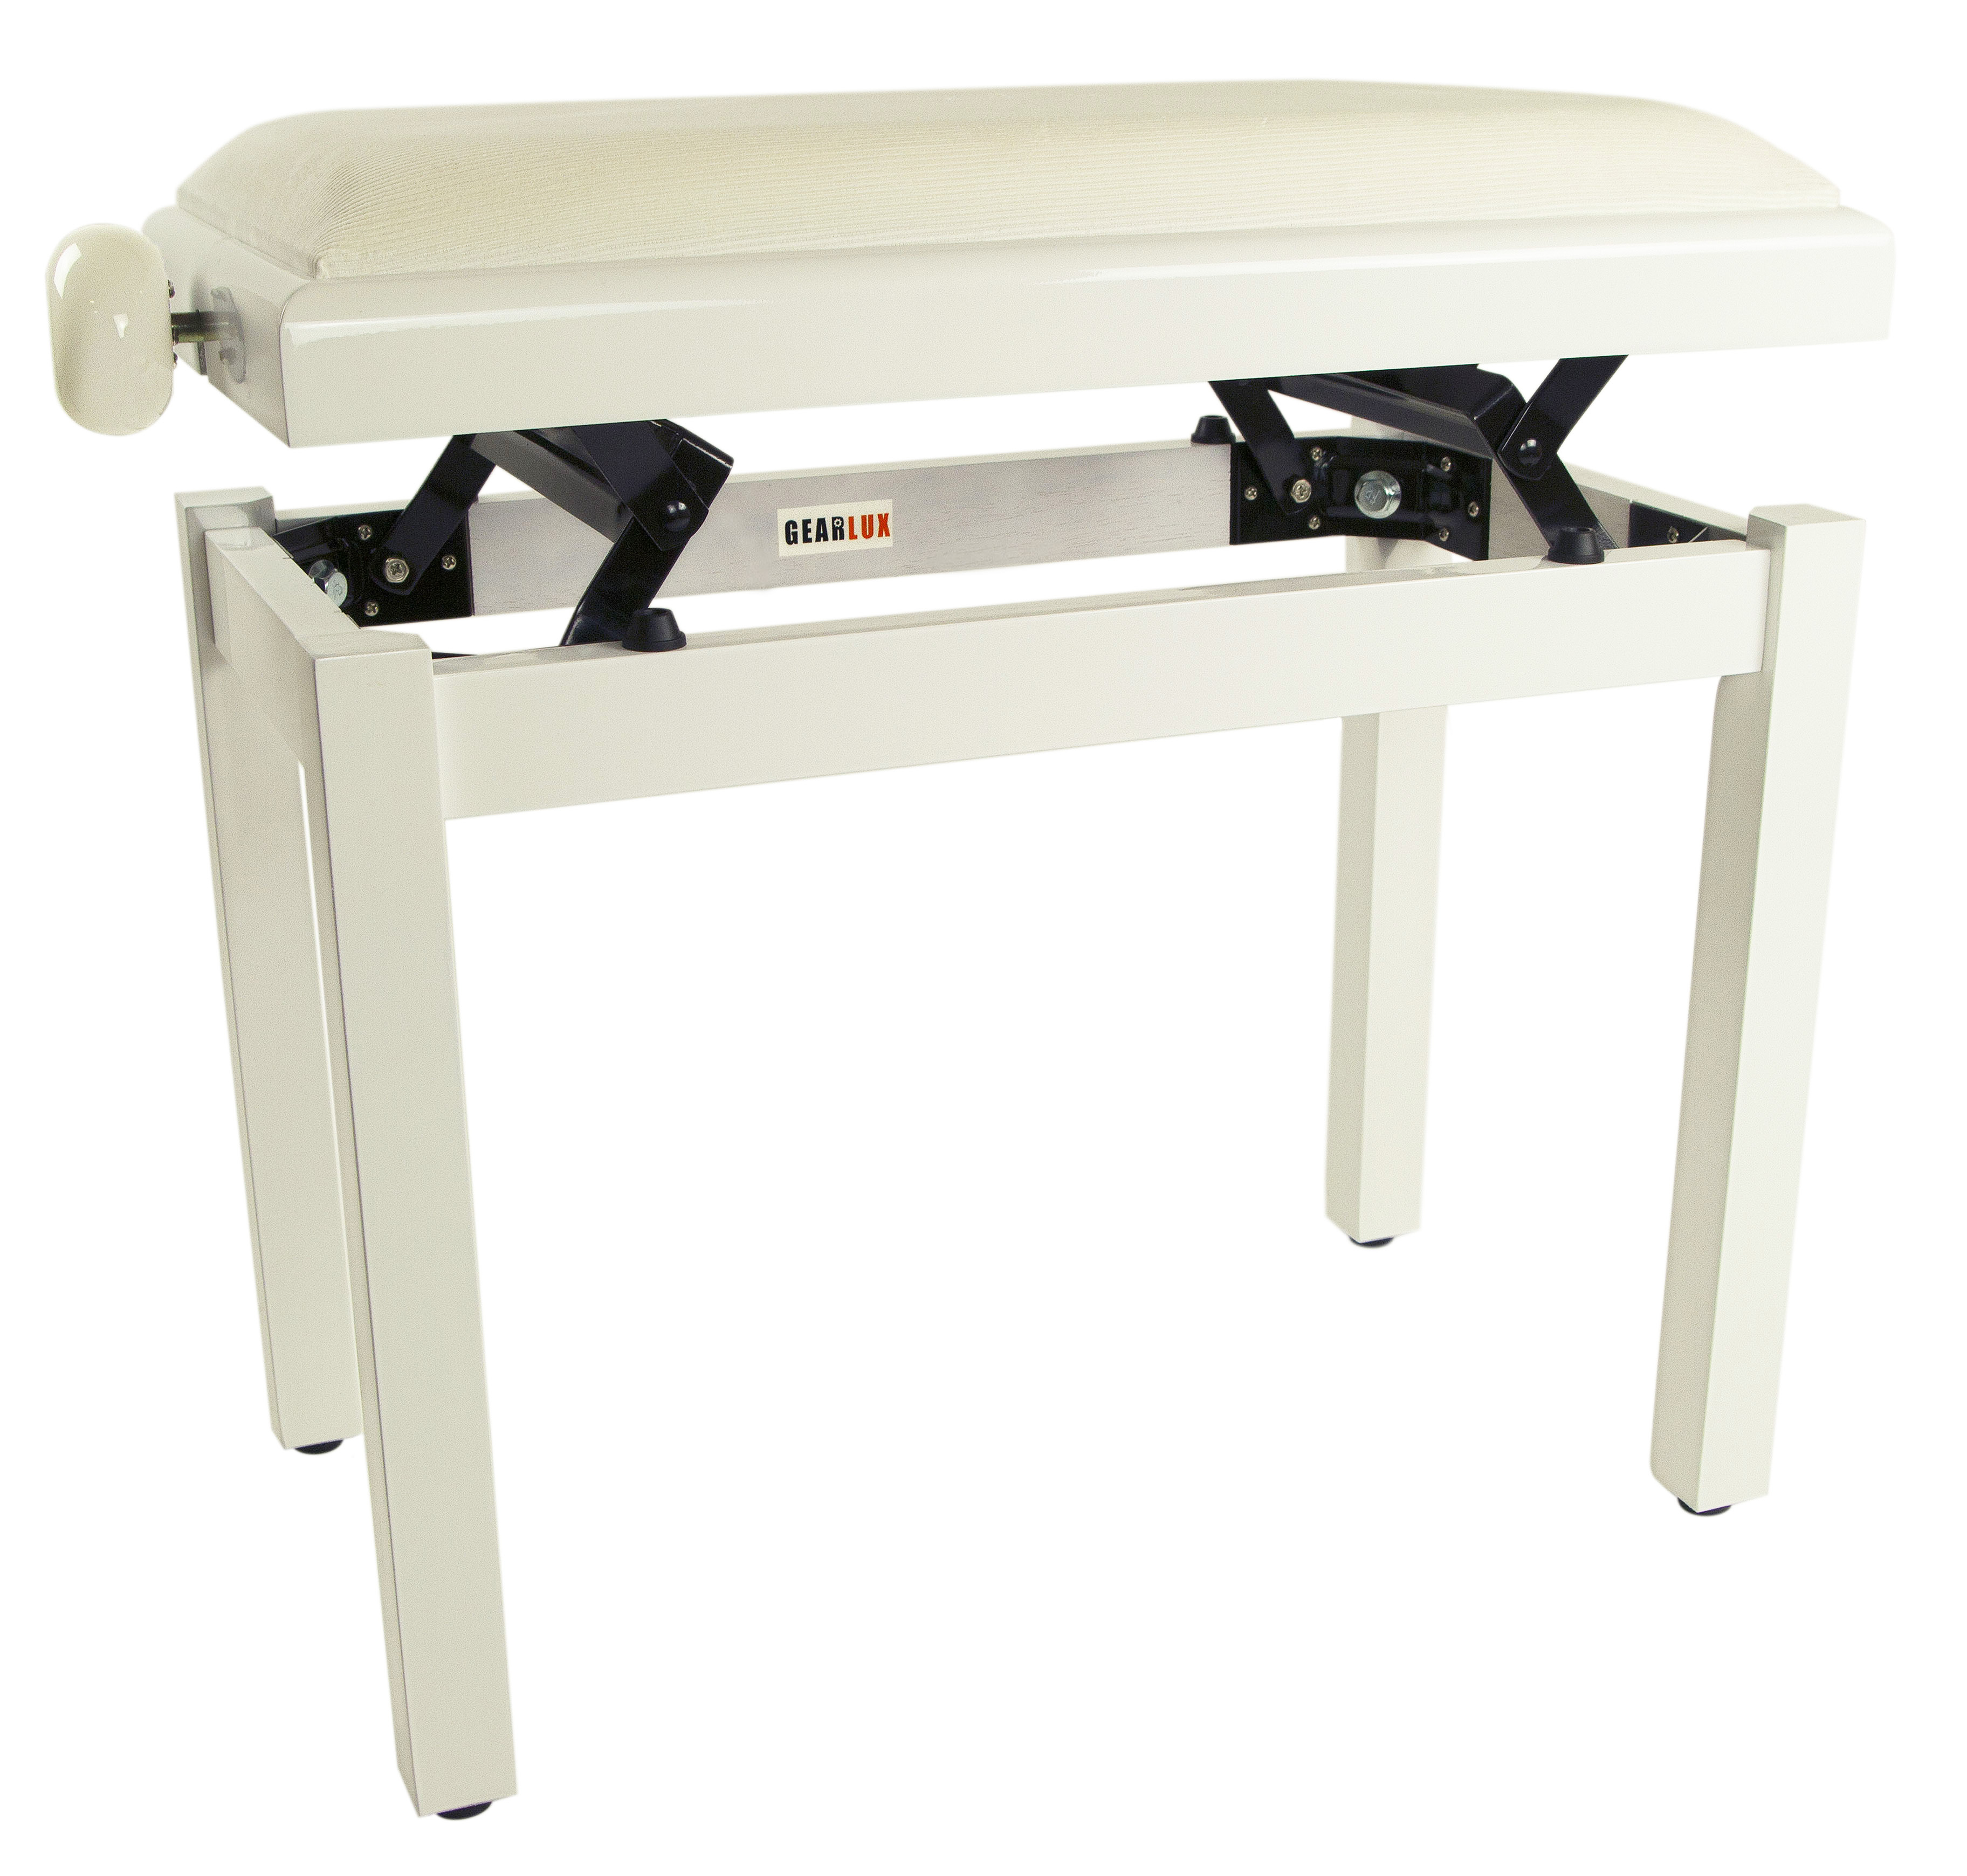 Gearlux Adjustable Piano Bench With Velvet Top White Gloss 660845715035 Ebay